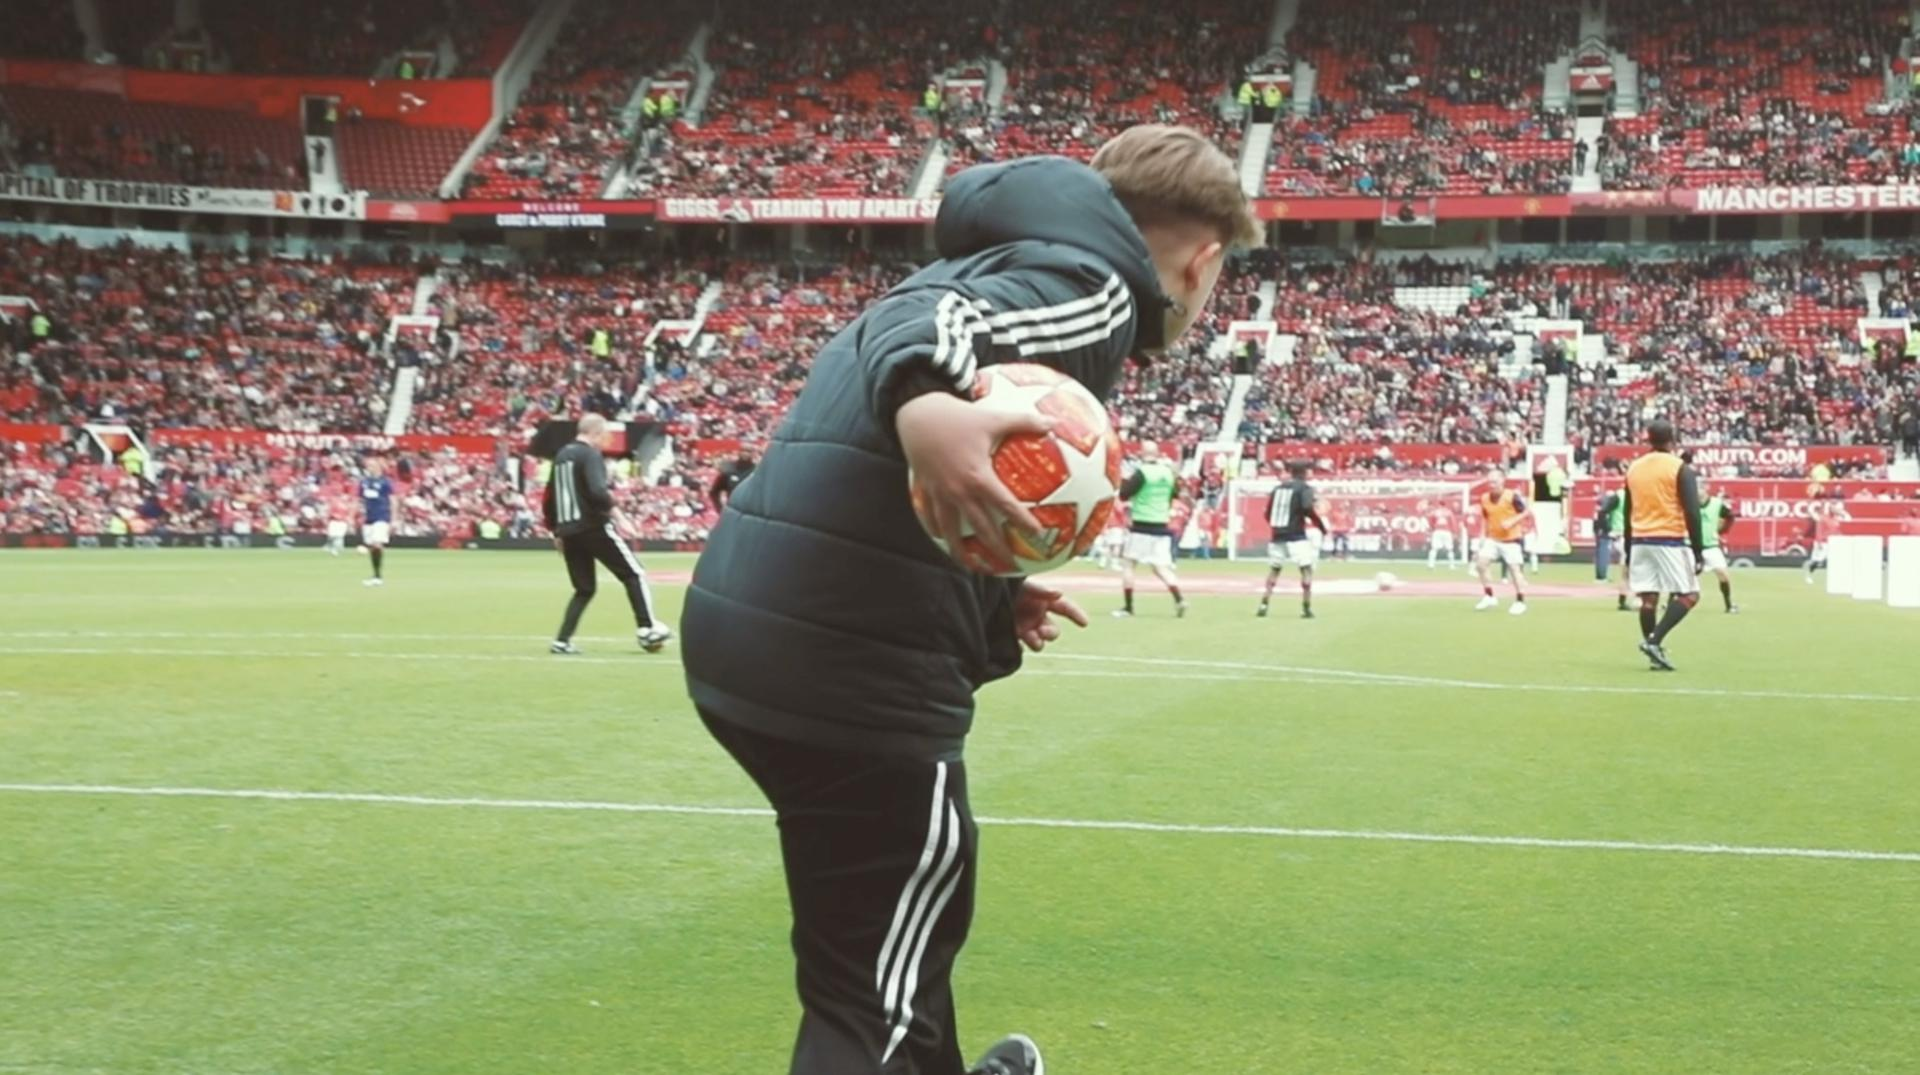 A youngster throws a ball while on work experience with the Manchester United Foundation.